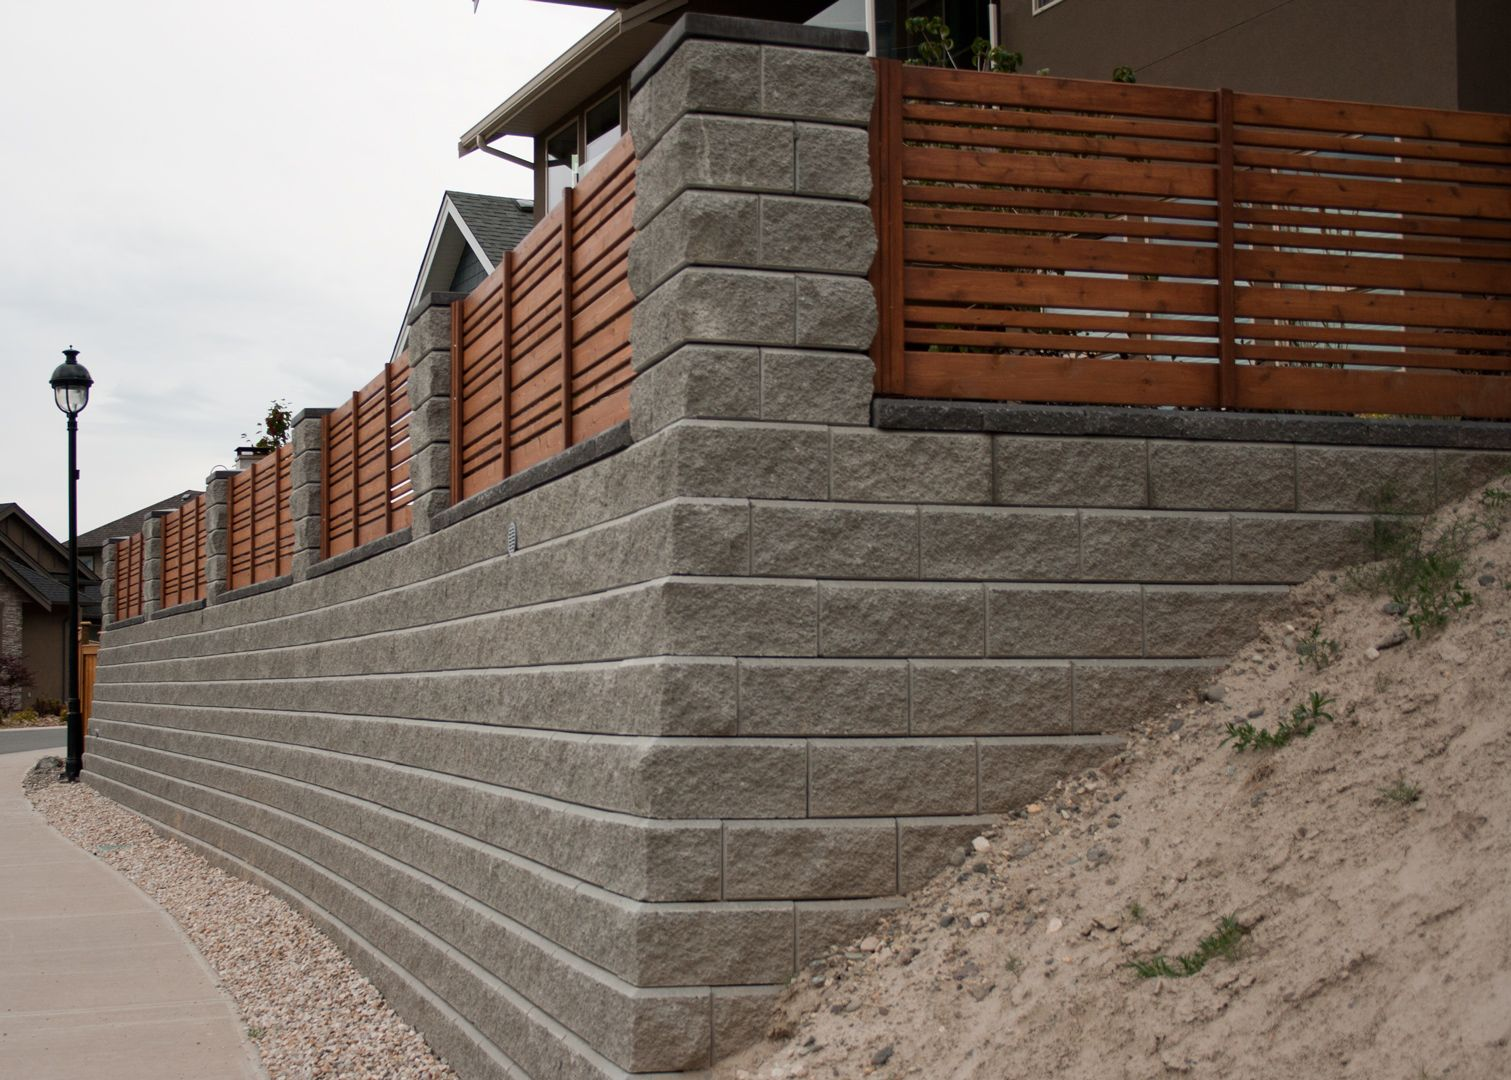 A Fair Price For A Job Well Done Wood Fence Retaining Wall Concrete Blocks